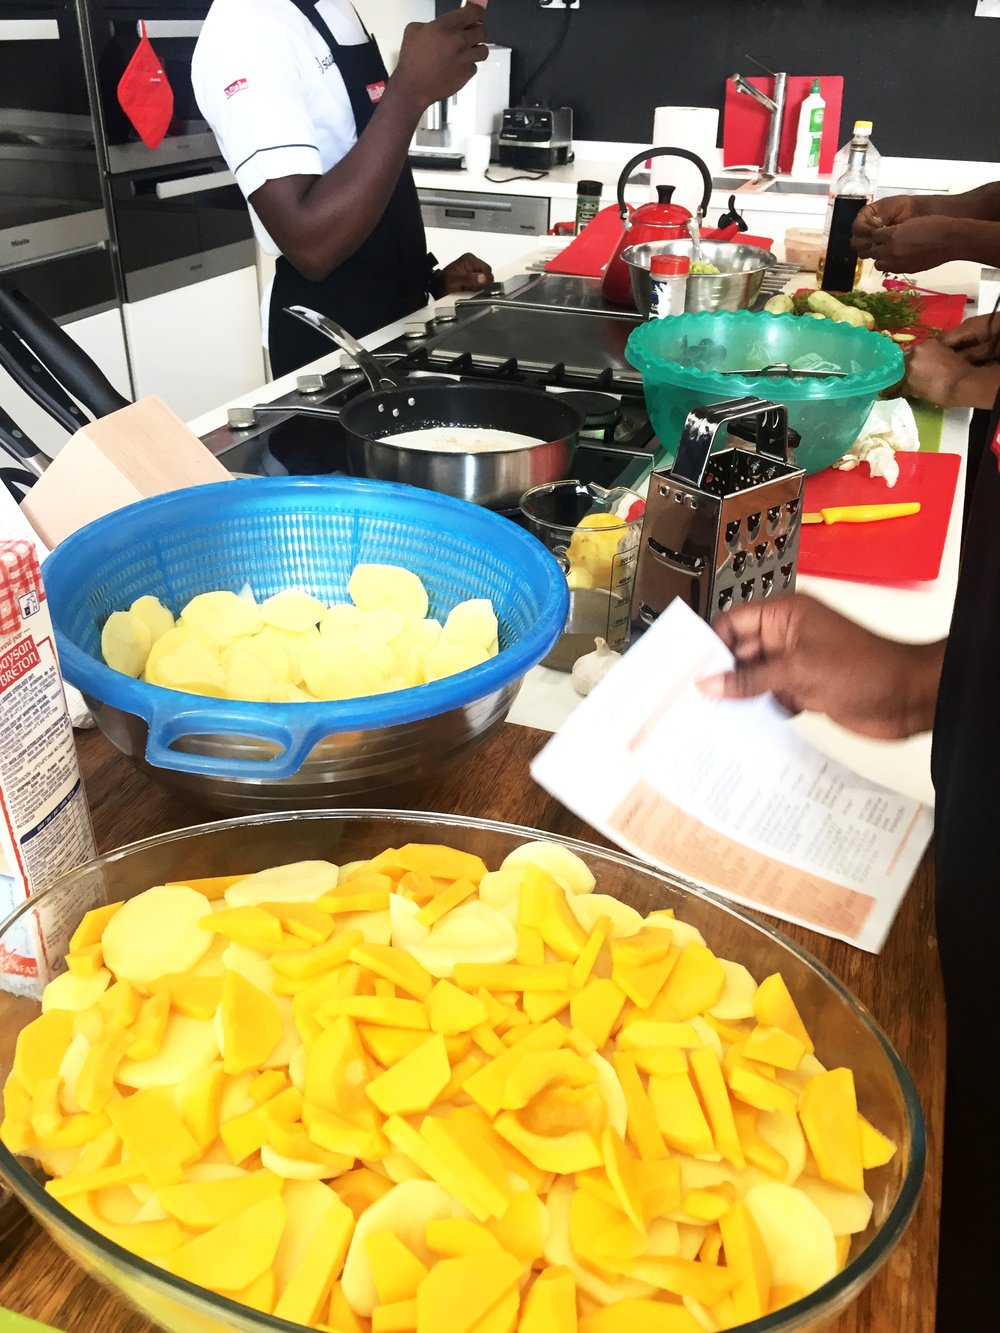 Miele showroom | Cooking classes in Lagos